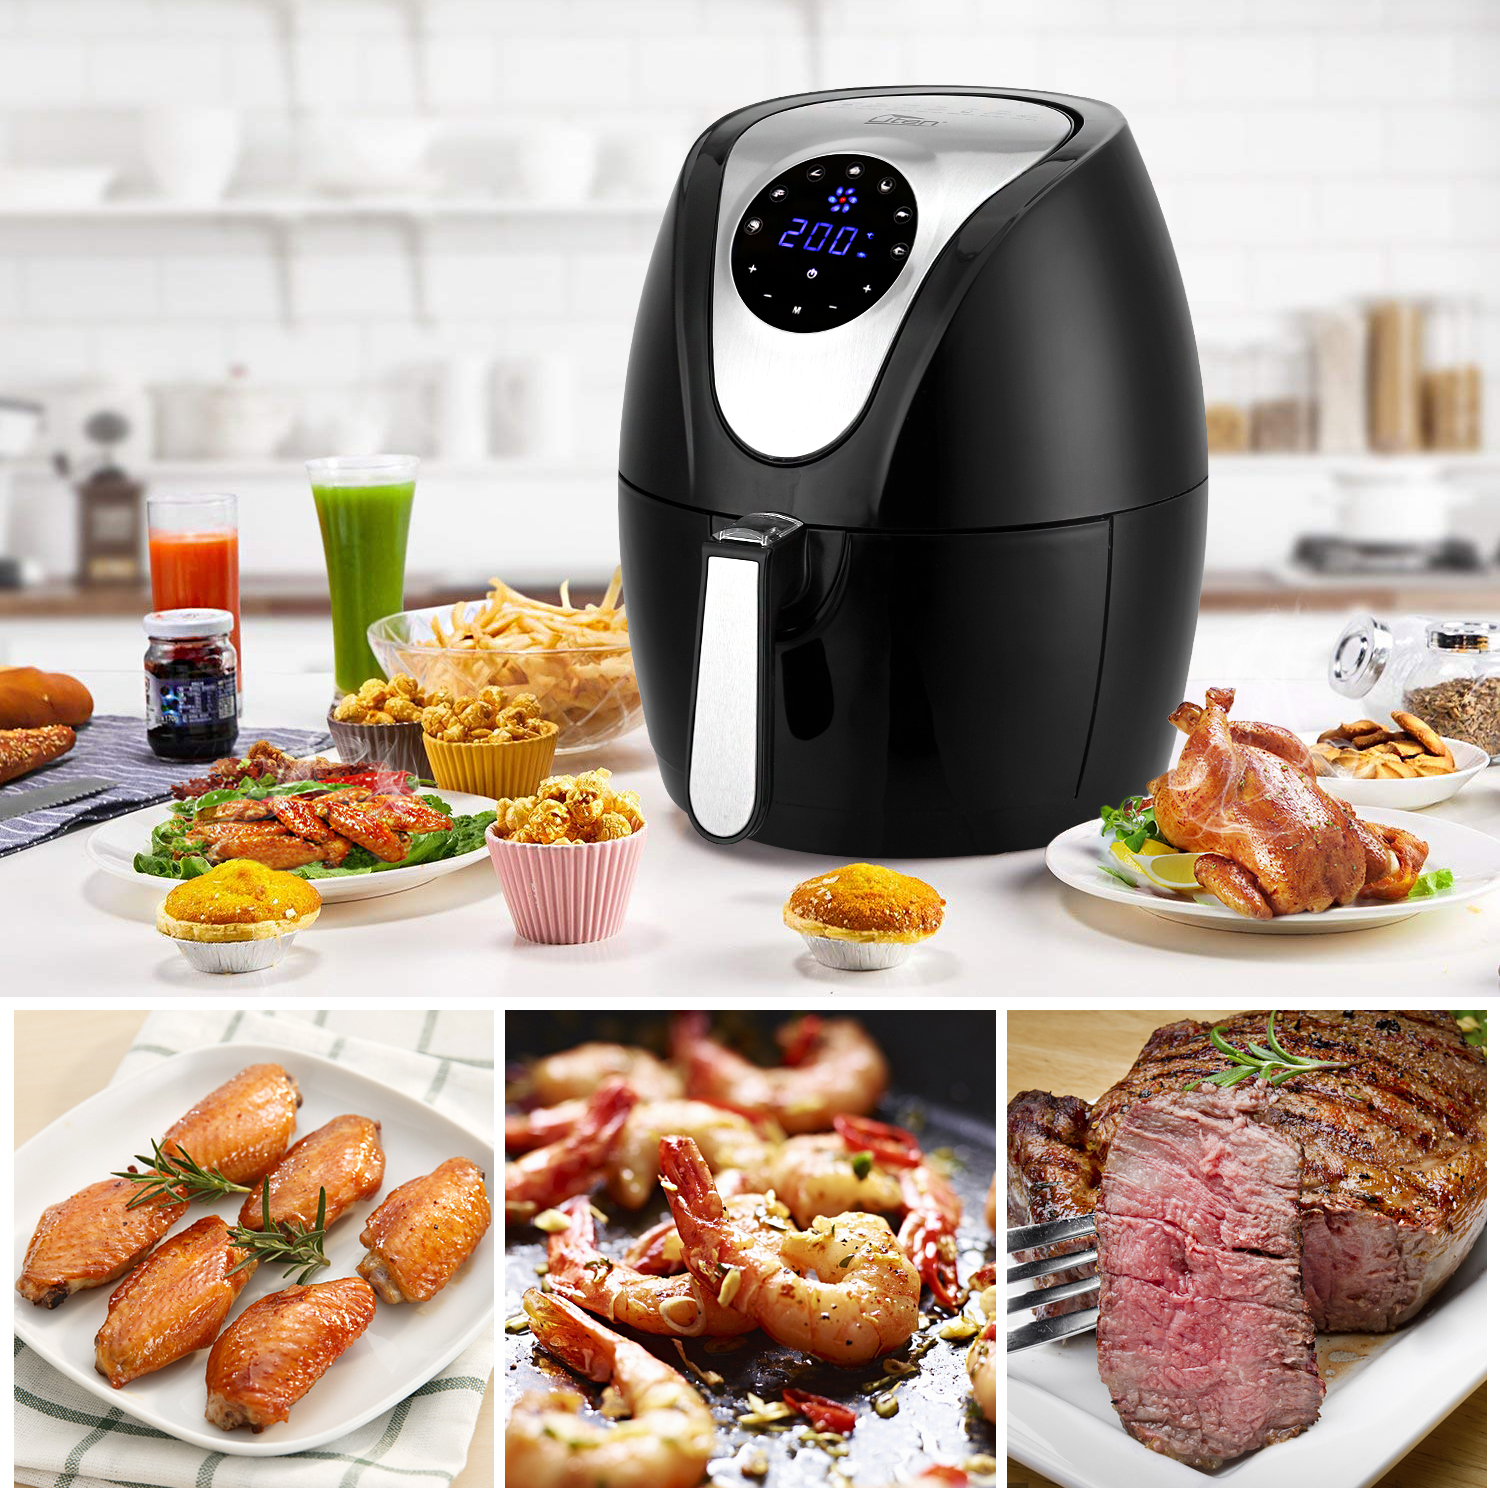 Air Fryer Low Fat Xl Health 4 5l 1400w Cooker Oven Oil